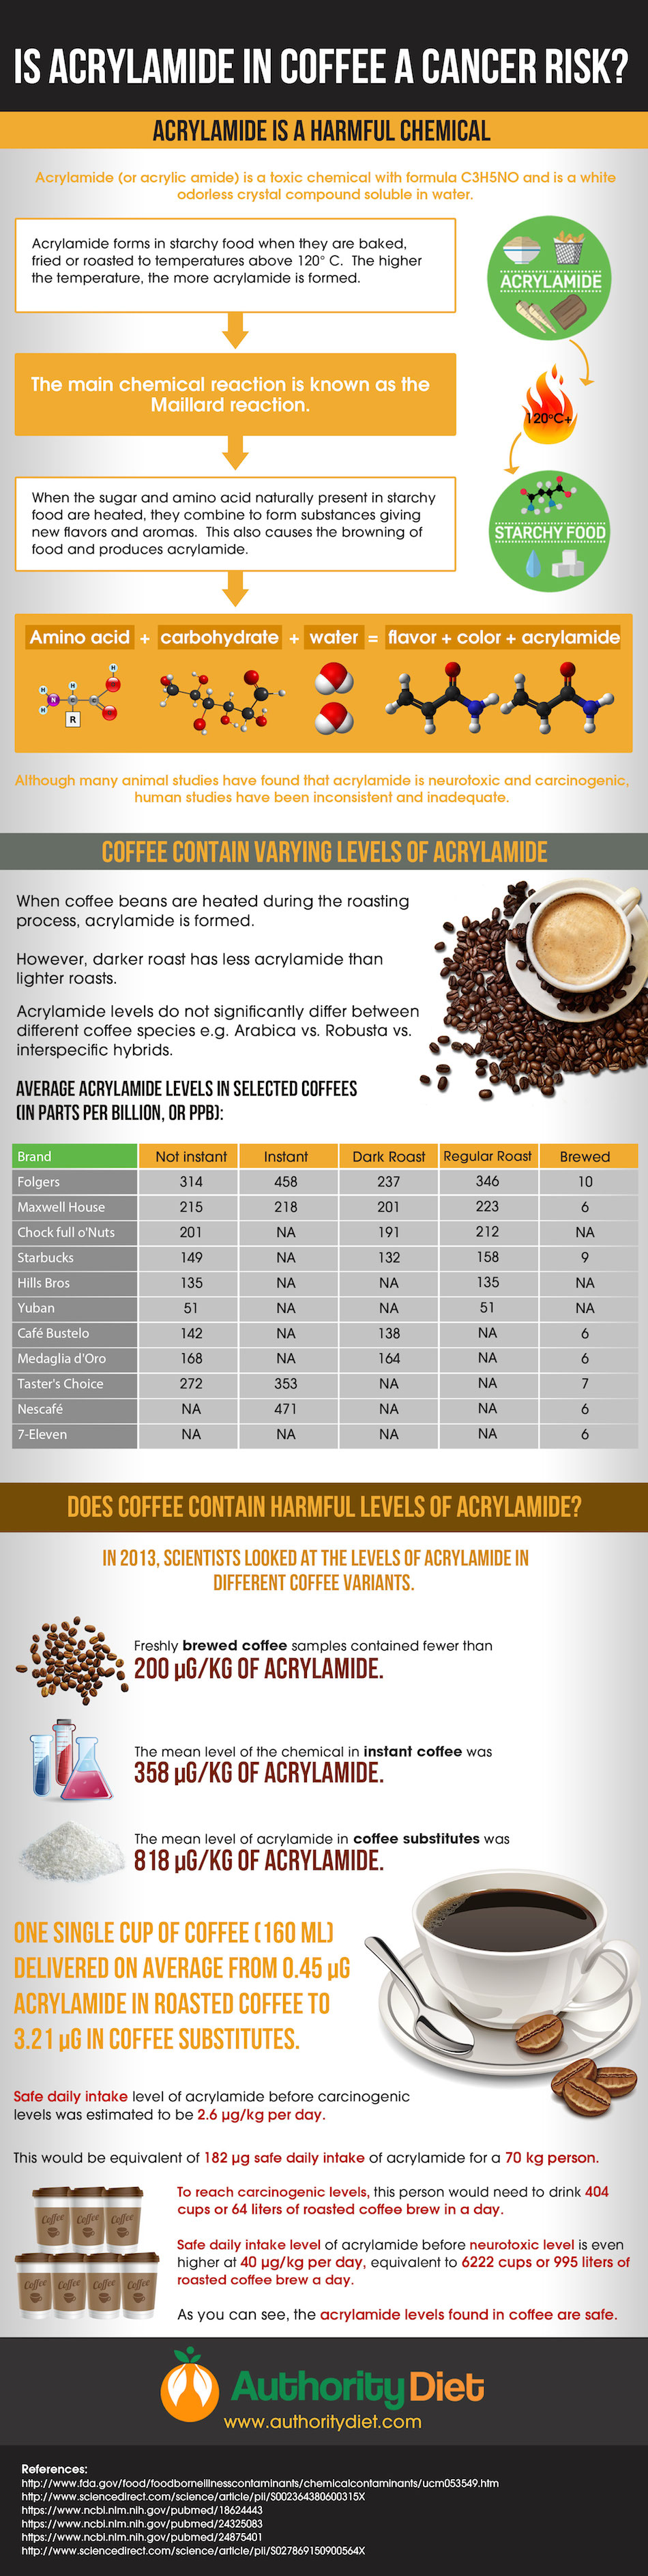 Is Coffee Slowly Killing You? - Infographic